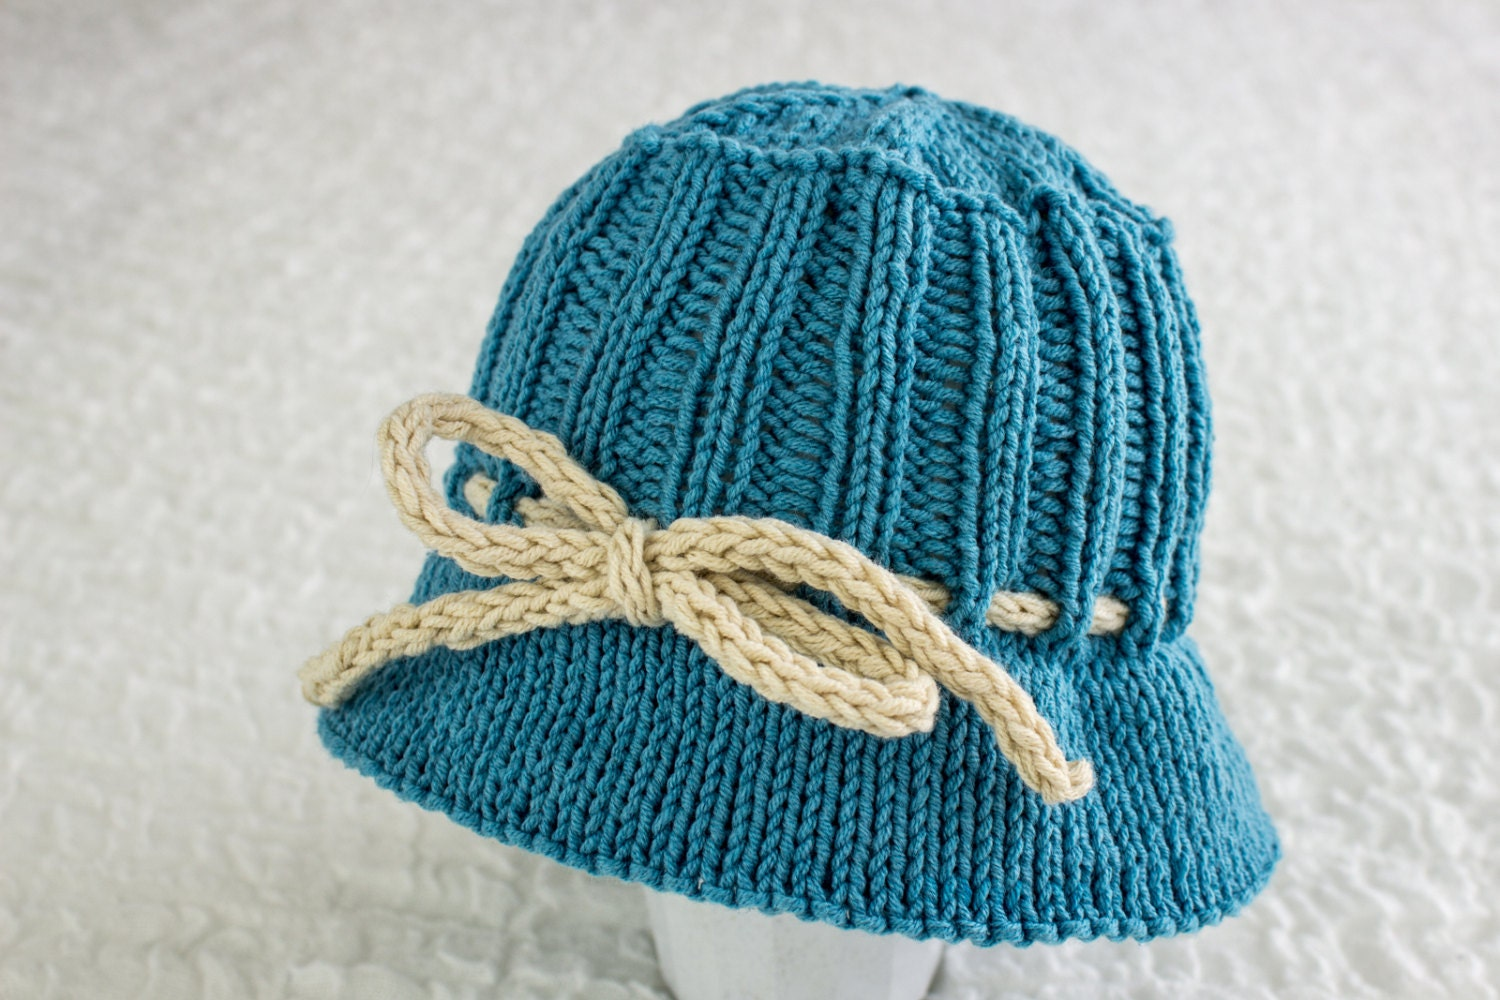 Knitting Pattern For Baby Hat With Brim : KNITTING PATTERN Baby Summer Hat Brimmed Hat Knitting